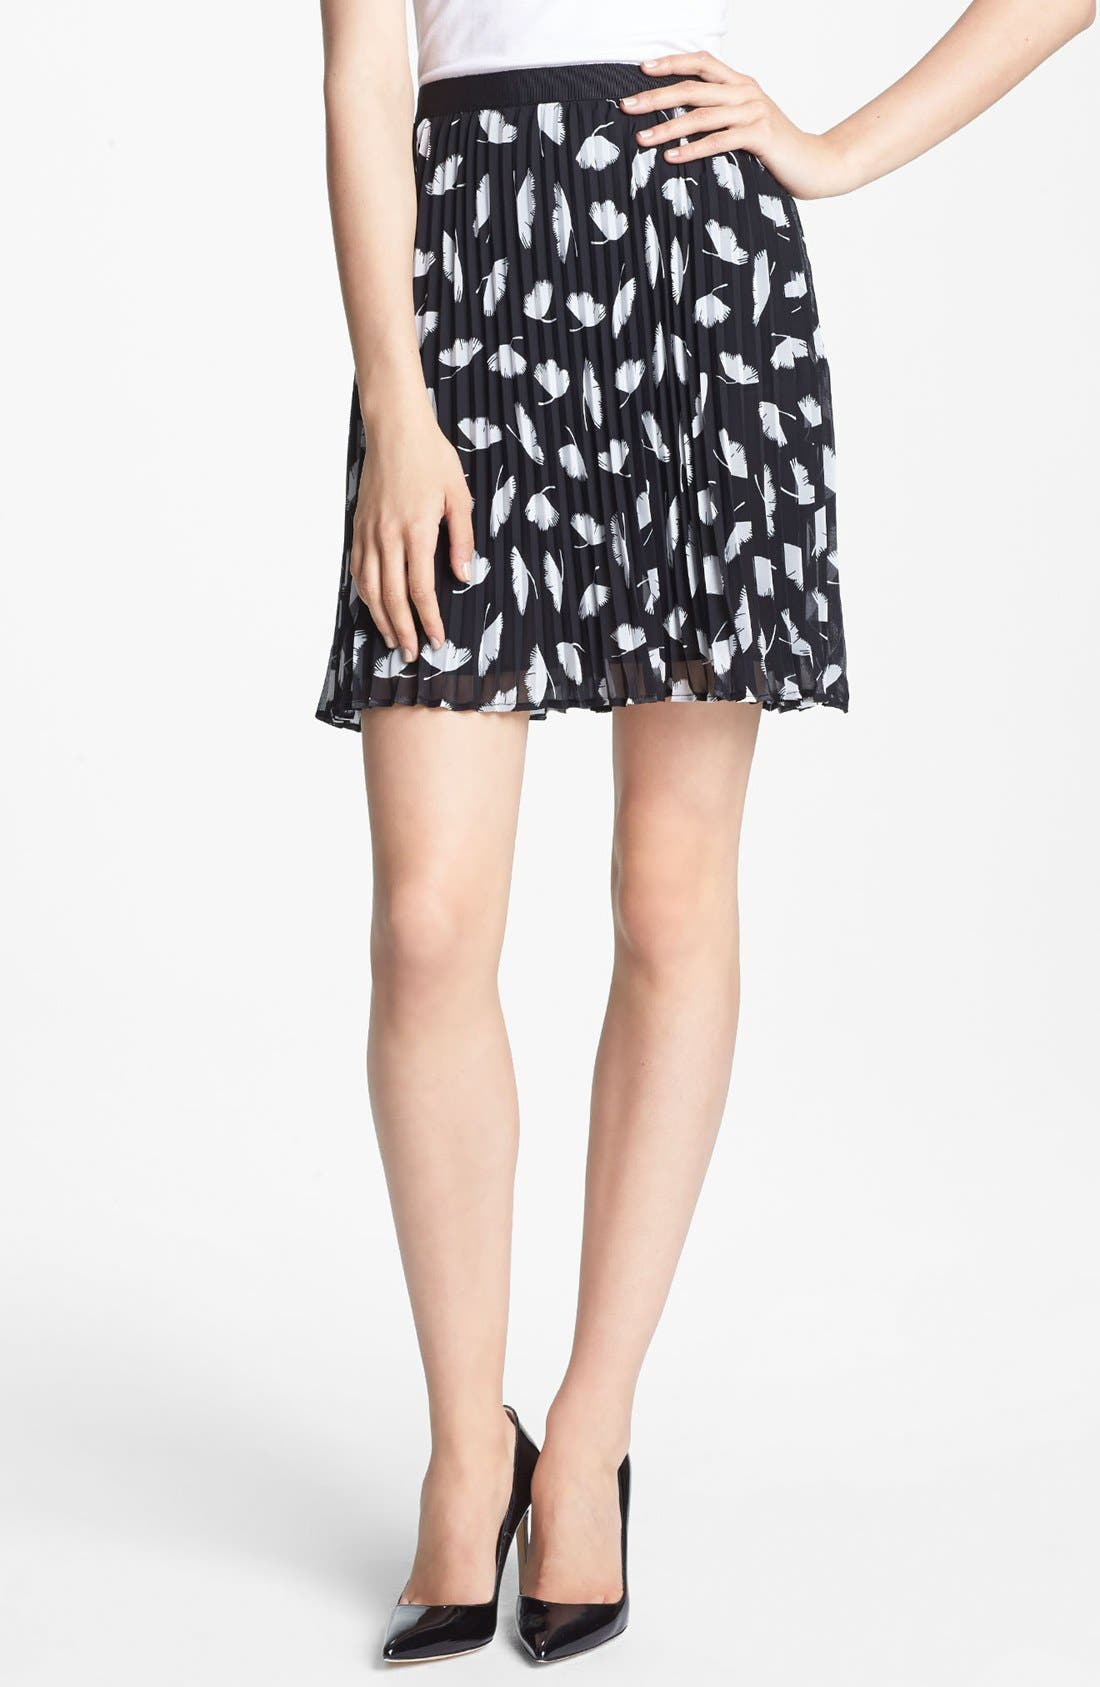 Alternate Image 1 Selected - Miss Wu 'Delicate Leaf' Print Chiffon Skirt (Nordstrom Exclusive)